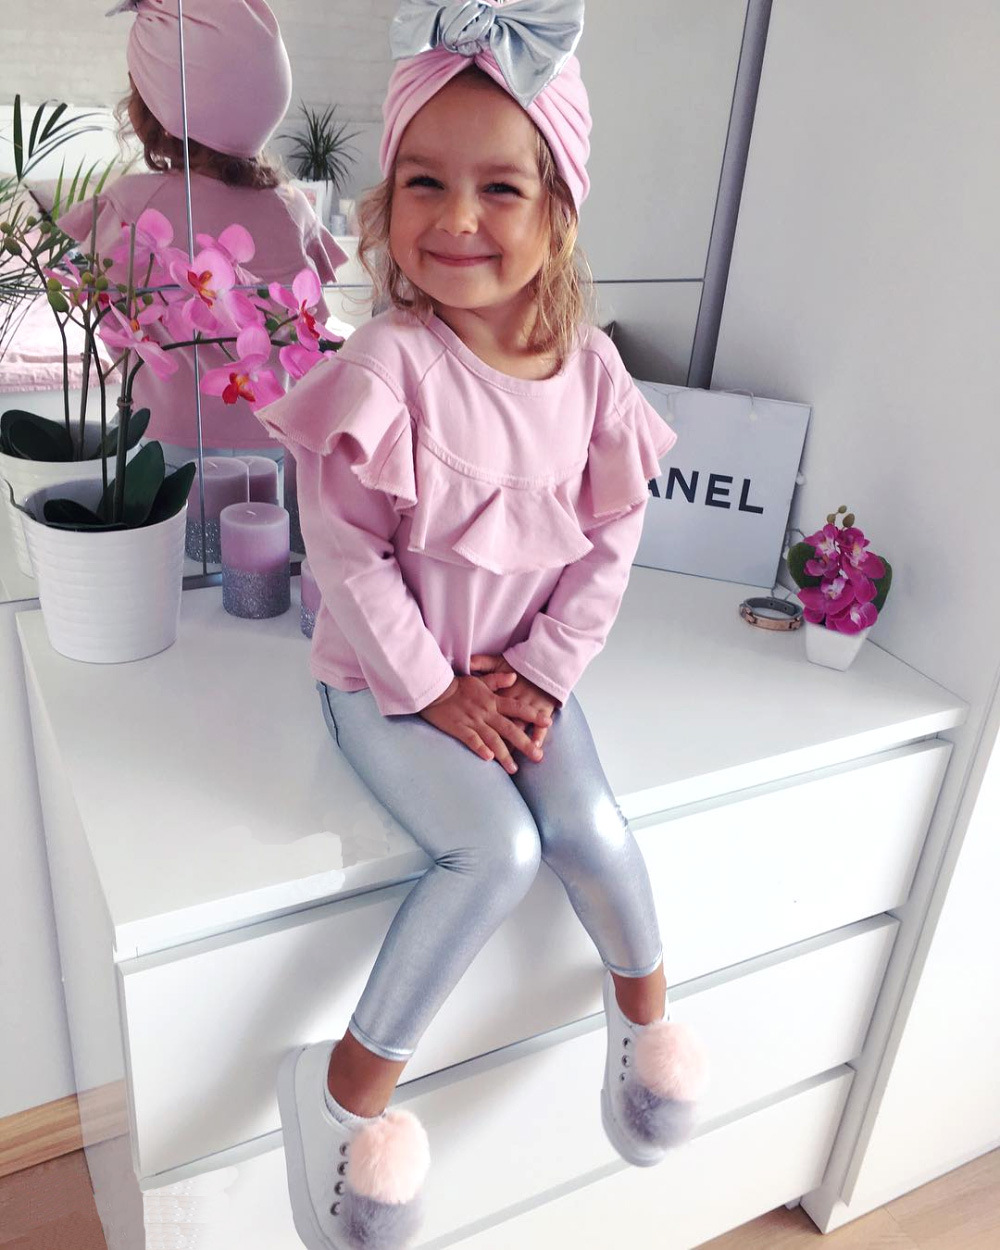 Toddler Child Lady Garments Units Lengthy Sleeve Tops Sweatshirt T-Shirts Pants Hat Bow 3pcs Outfits Children Clothes Set Clothes Units, Low-cost Clothes Units, Toddler Child Lady Garments Units Lengthy...